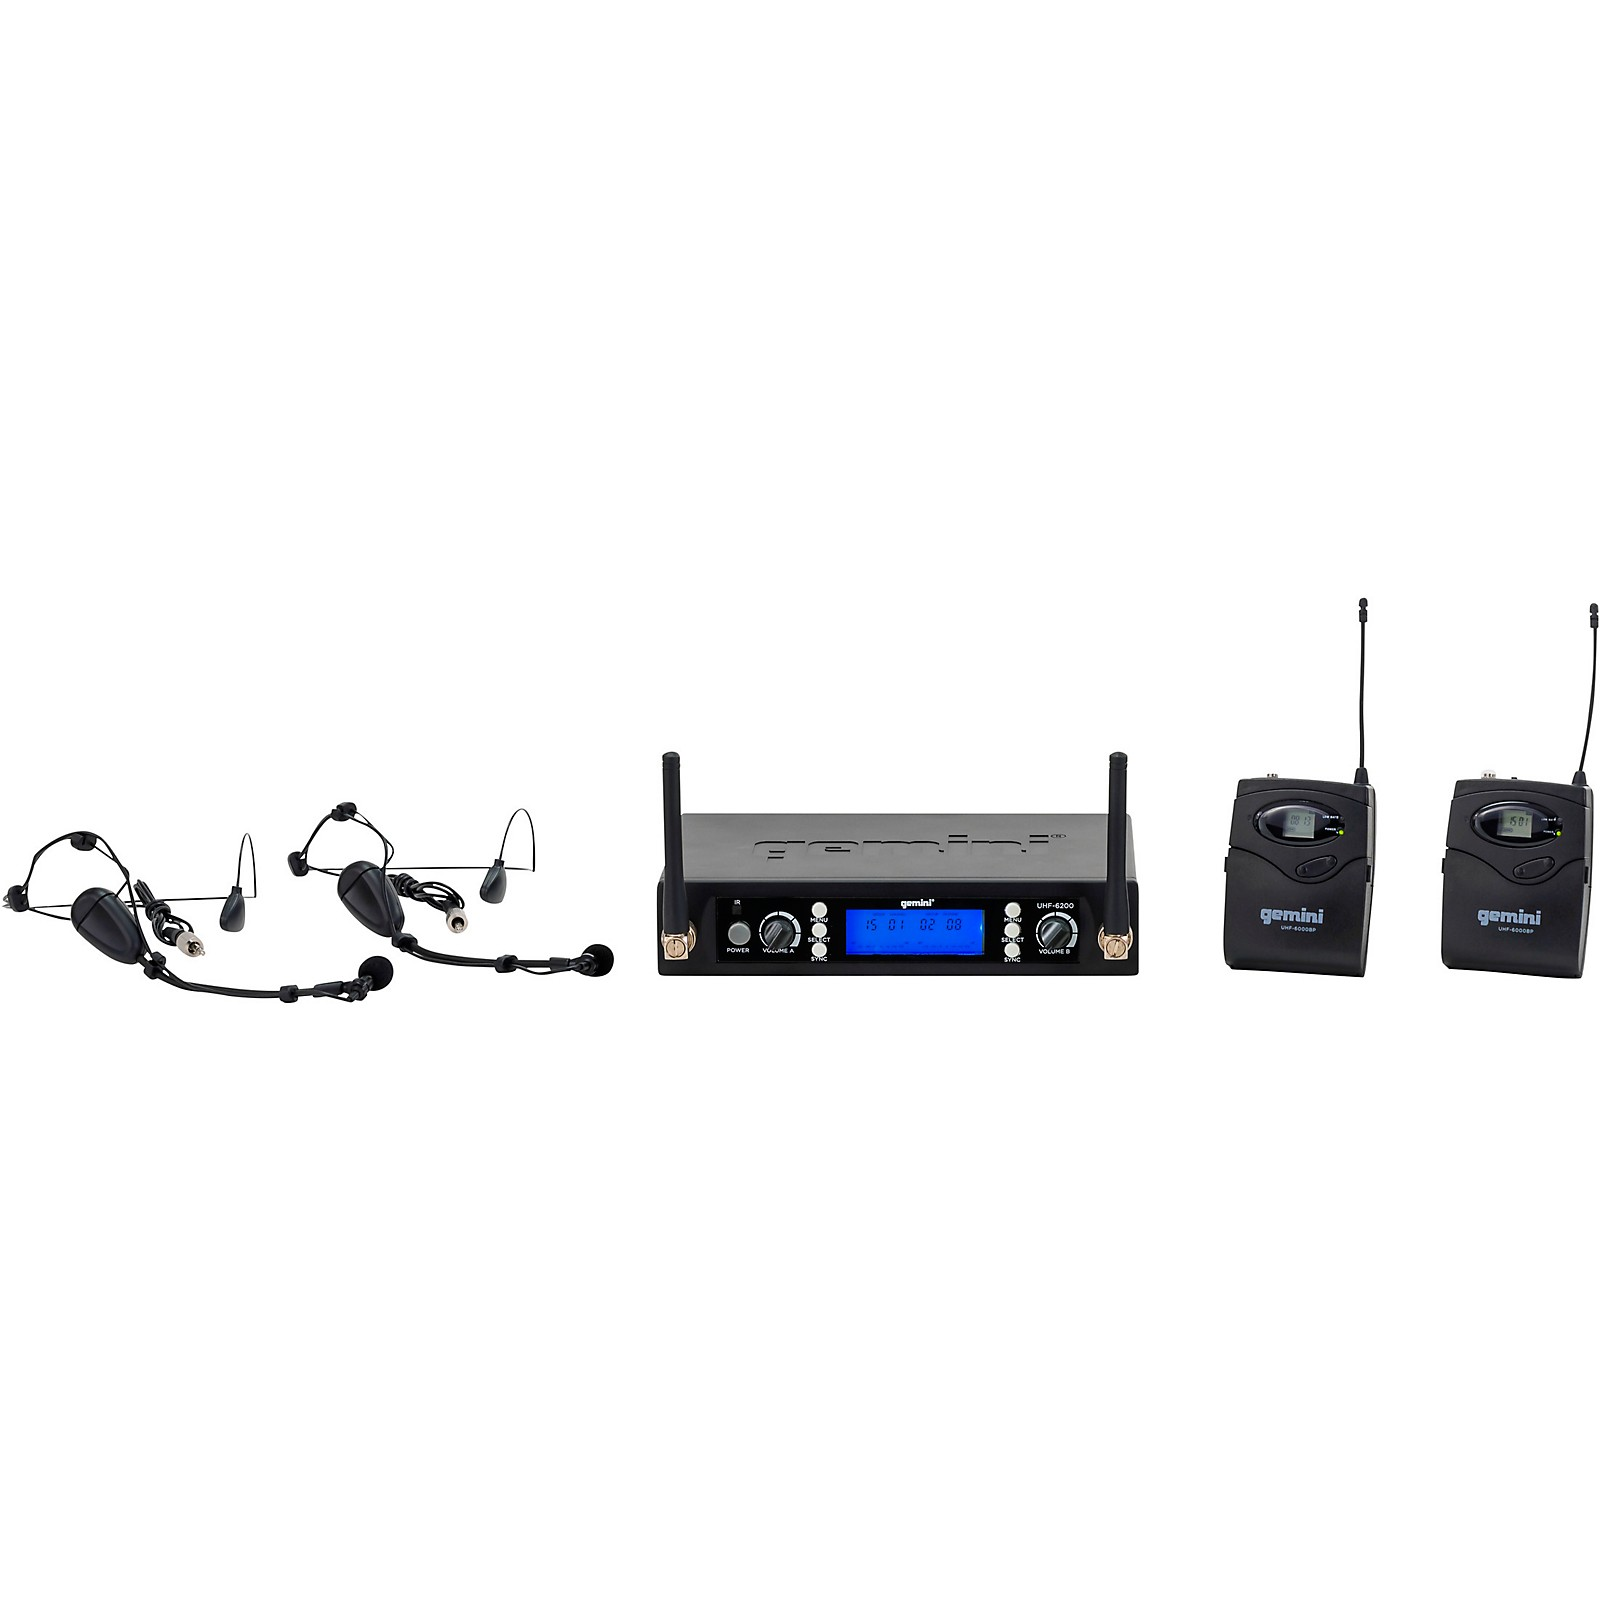 Gemini UHF-6200HL Dual Headset With Detachable Lavalier Wireless System